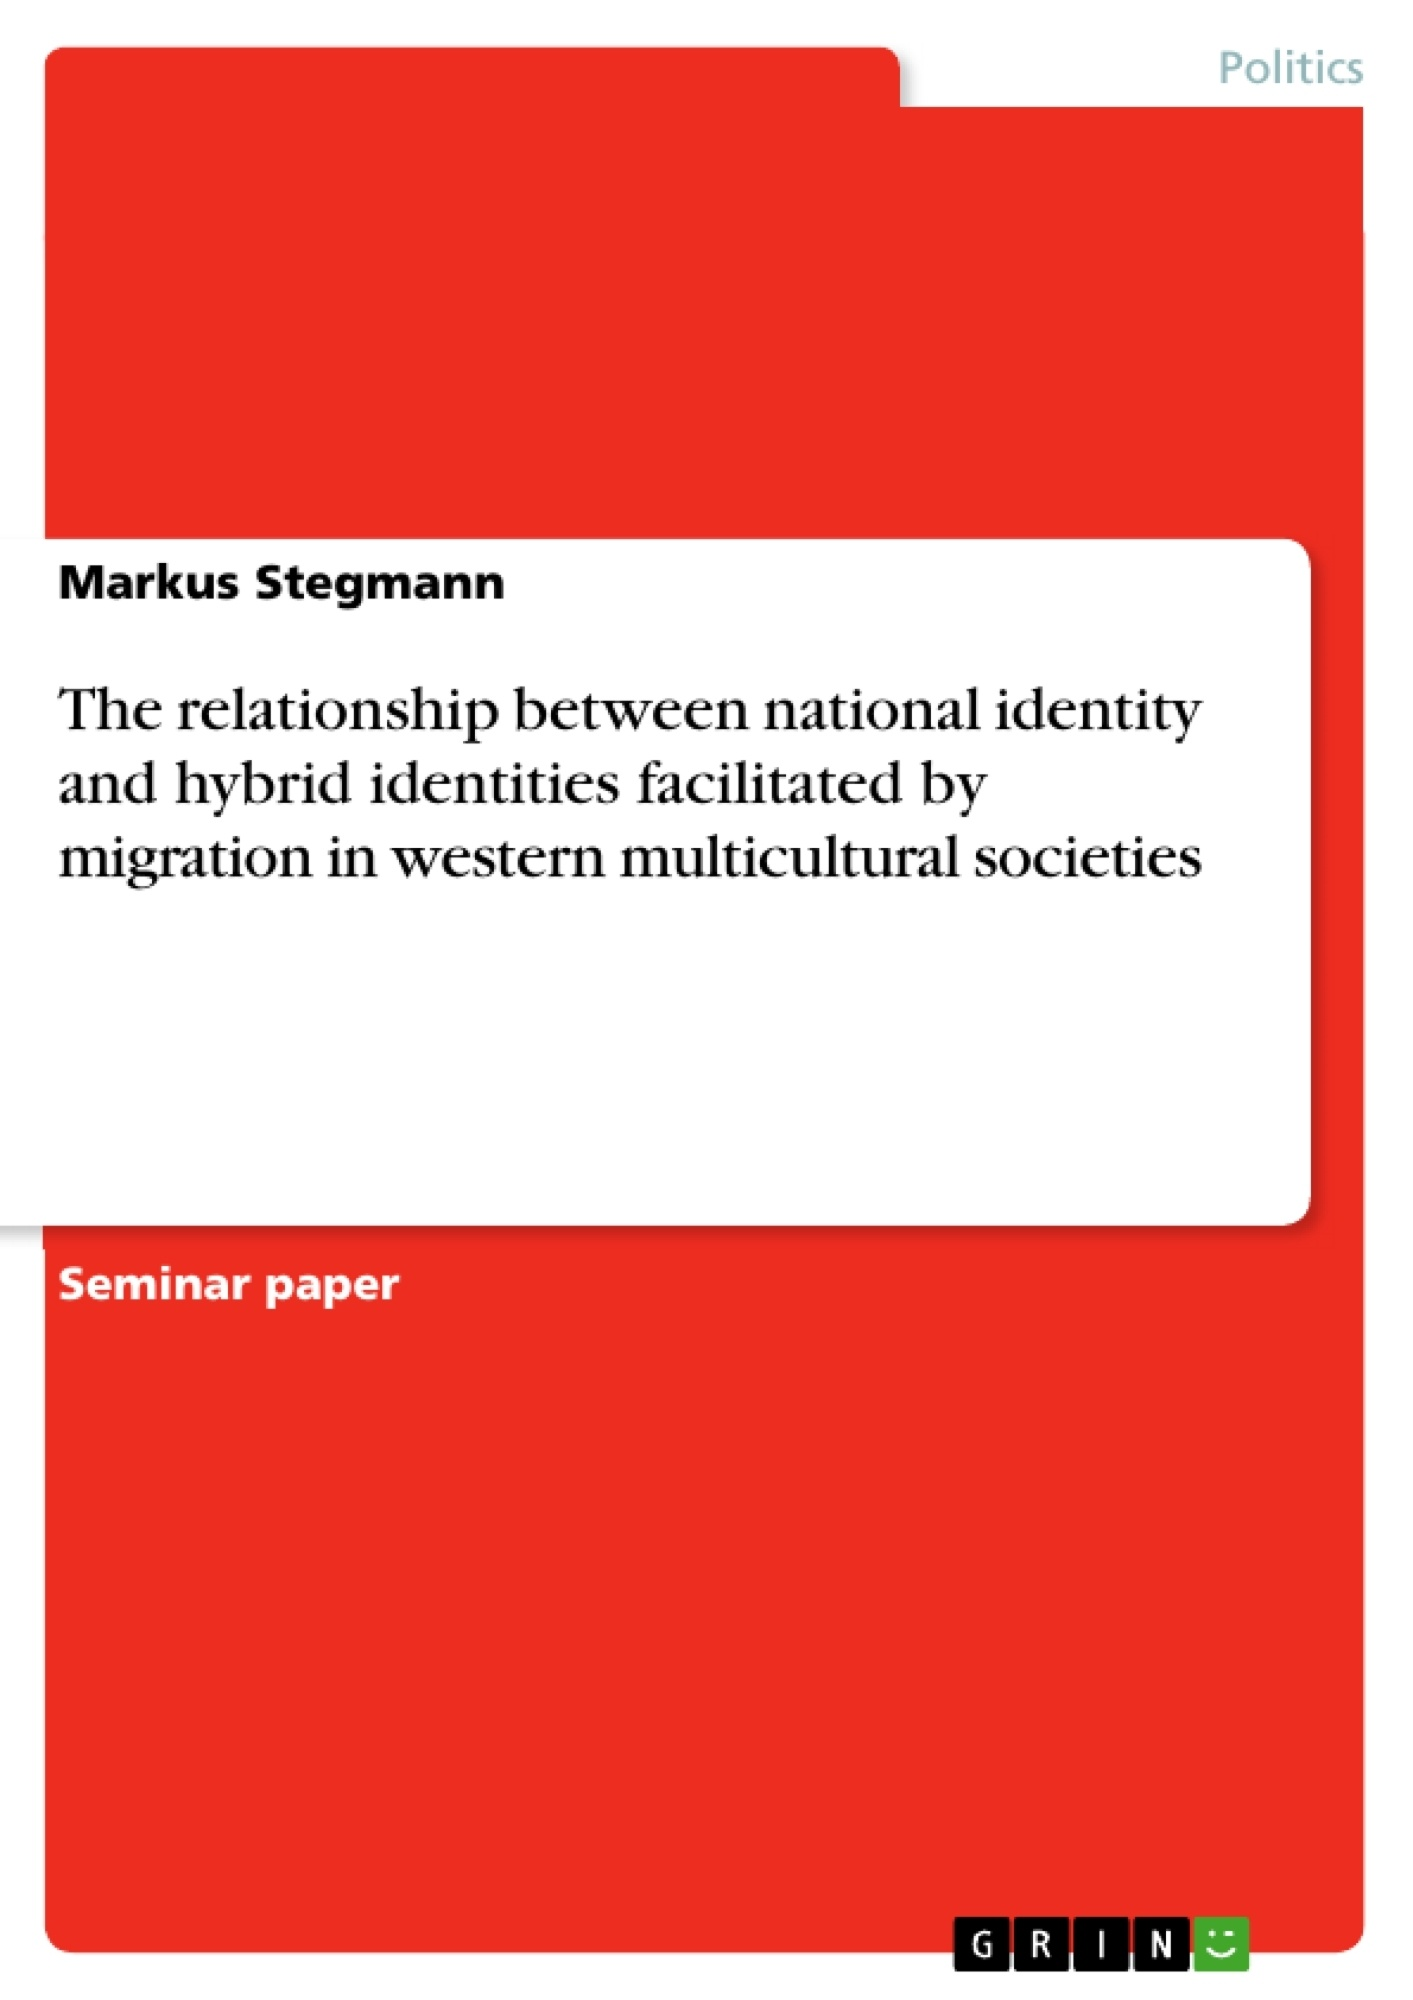 the relationship between national identity and hybrid identities  upload your own papers earn money and win an iphone x